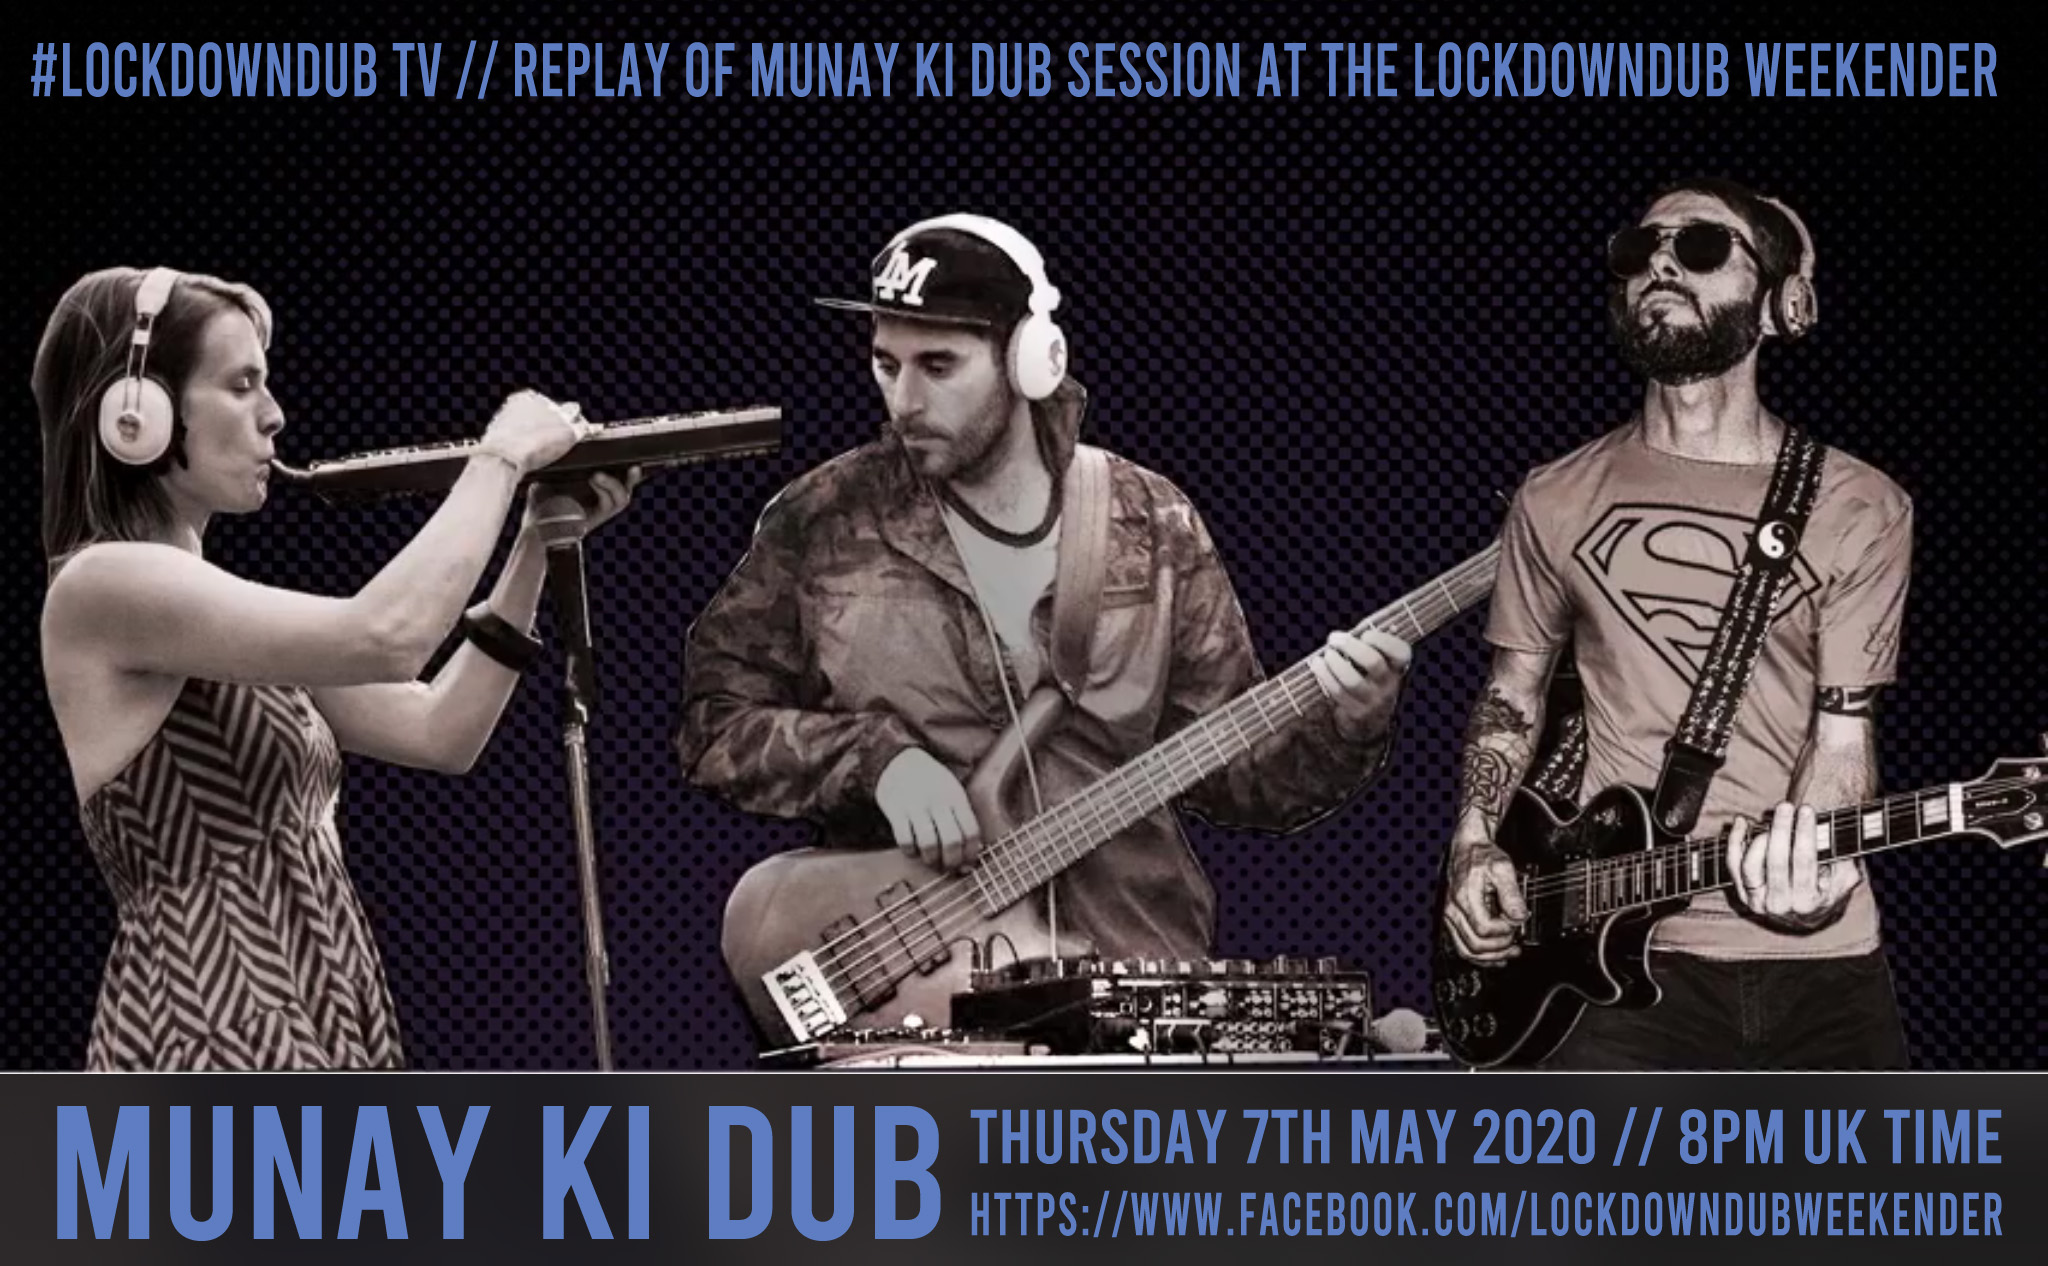 Munay Ki Dub (ARG) at Lockdowndub Tv / Dubophonic Records